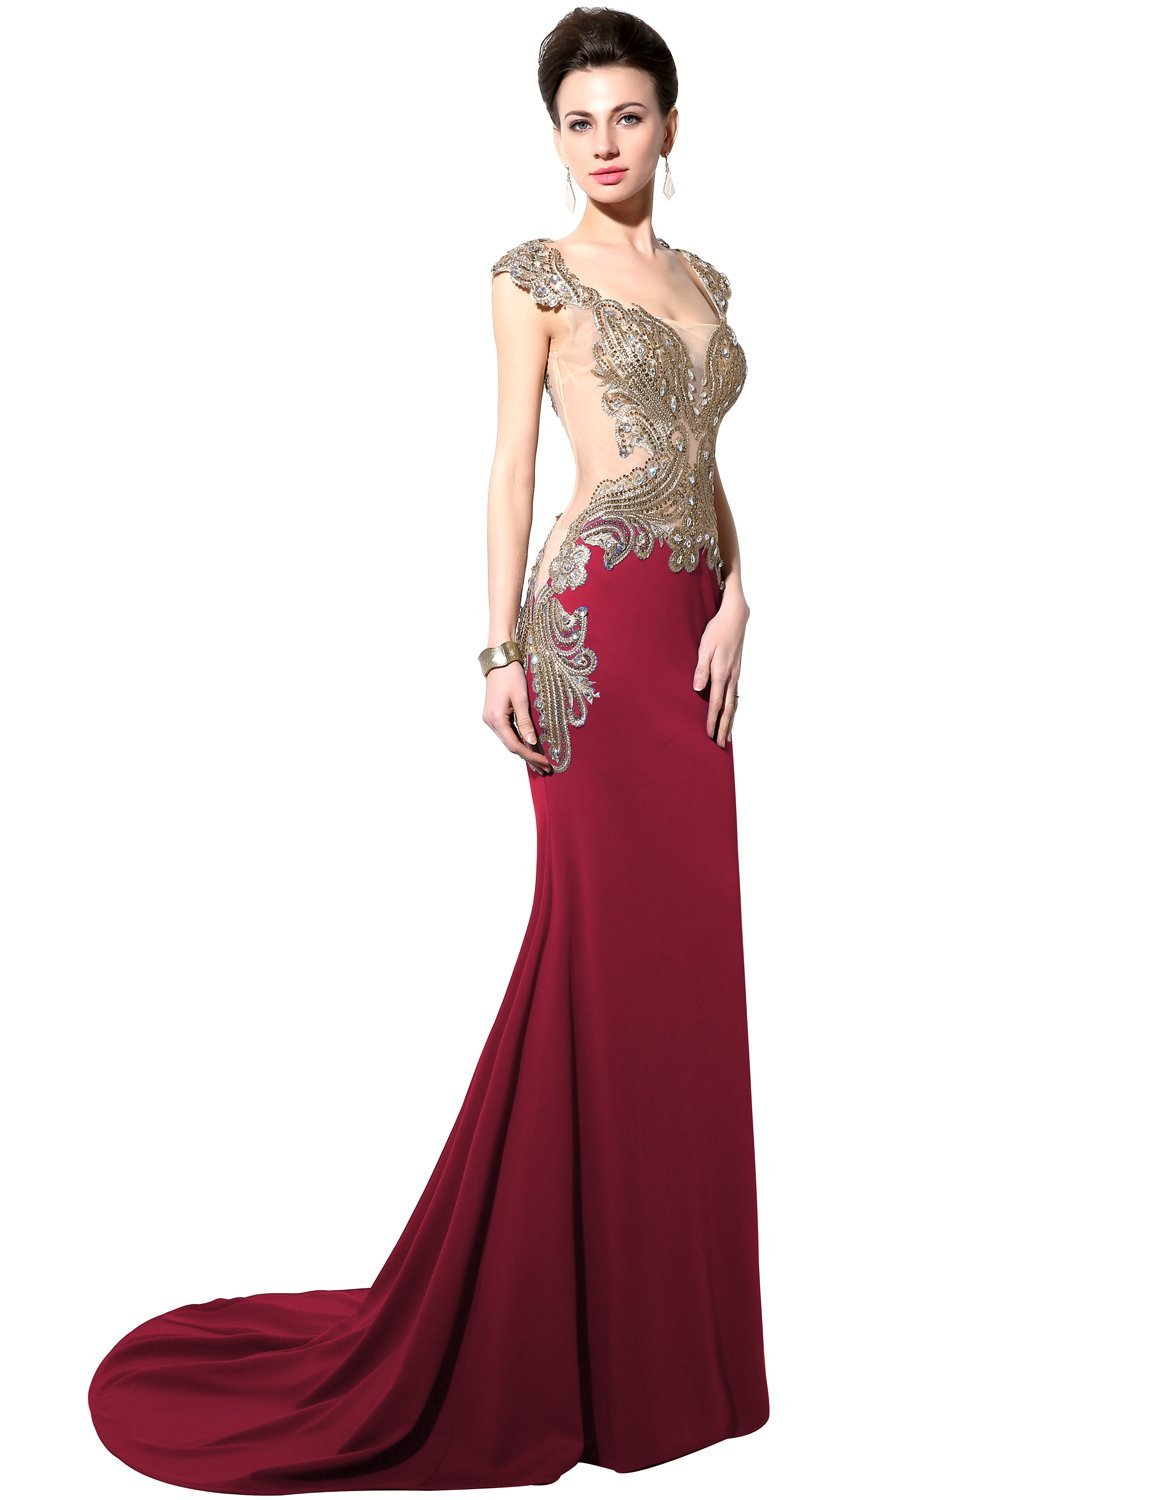 73e7962ee5 Long Evening Dresses Amazon - Gomes Weine AG